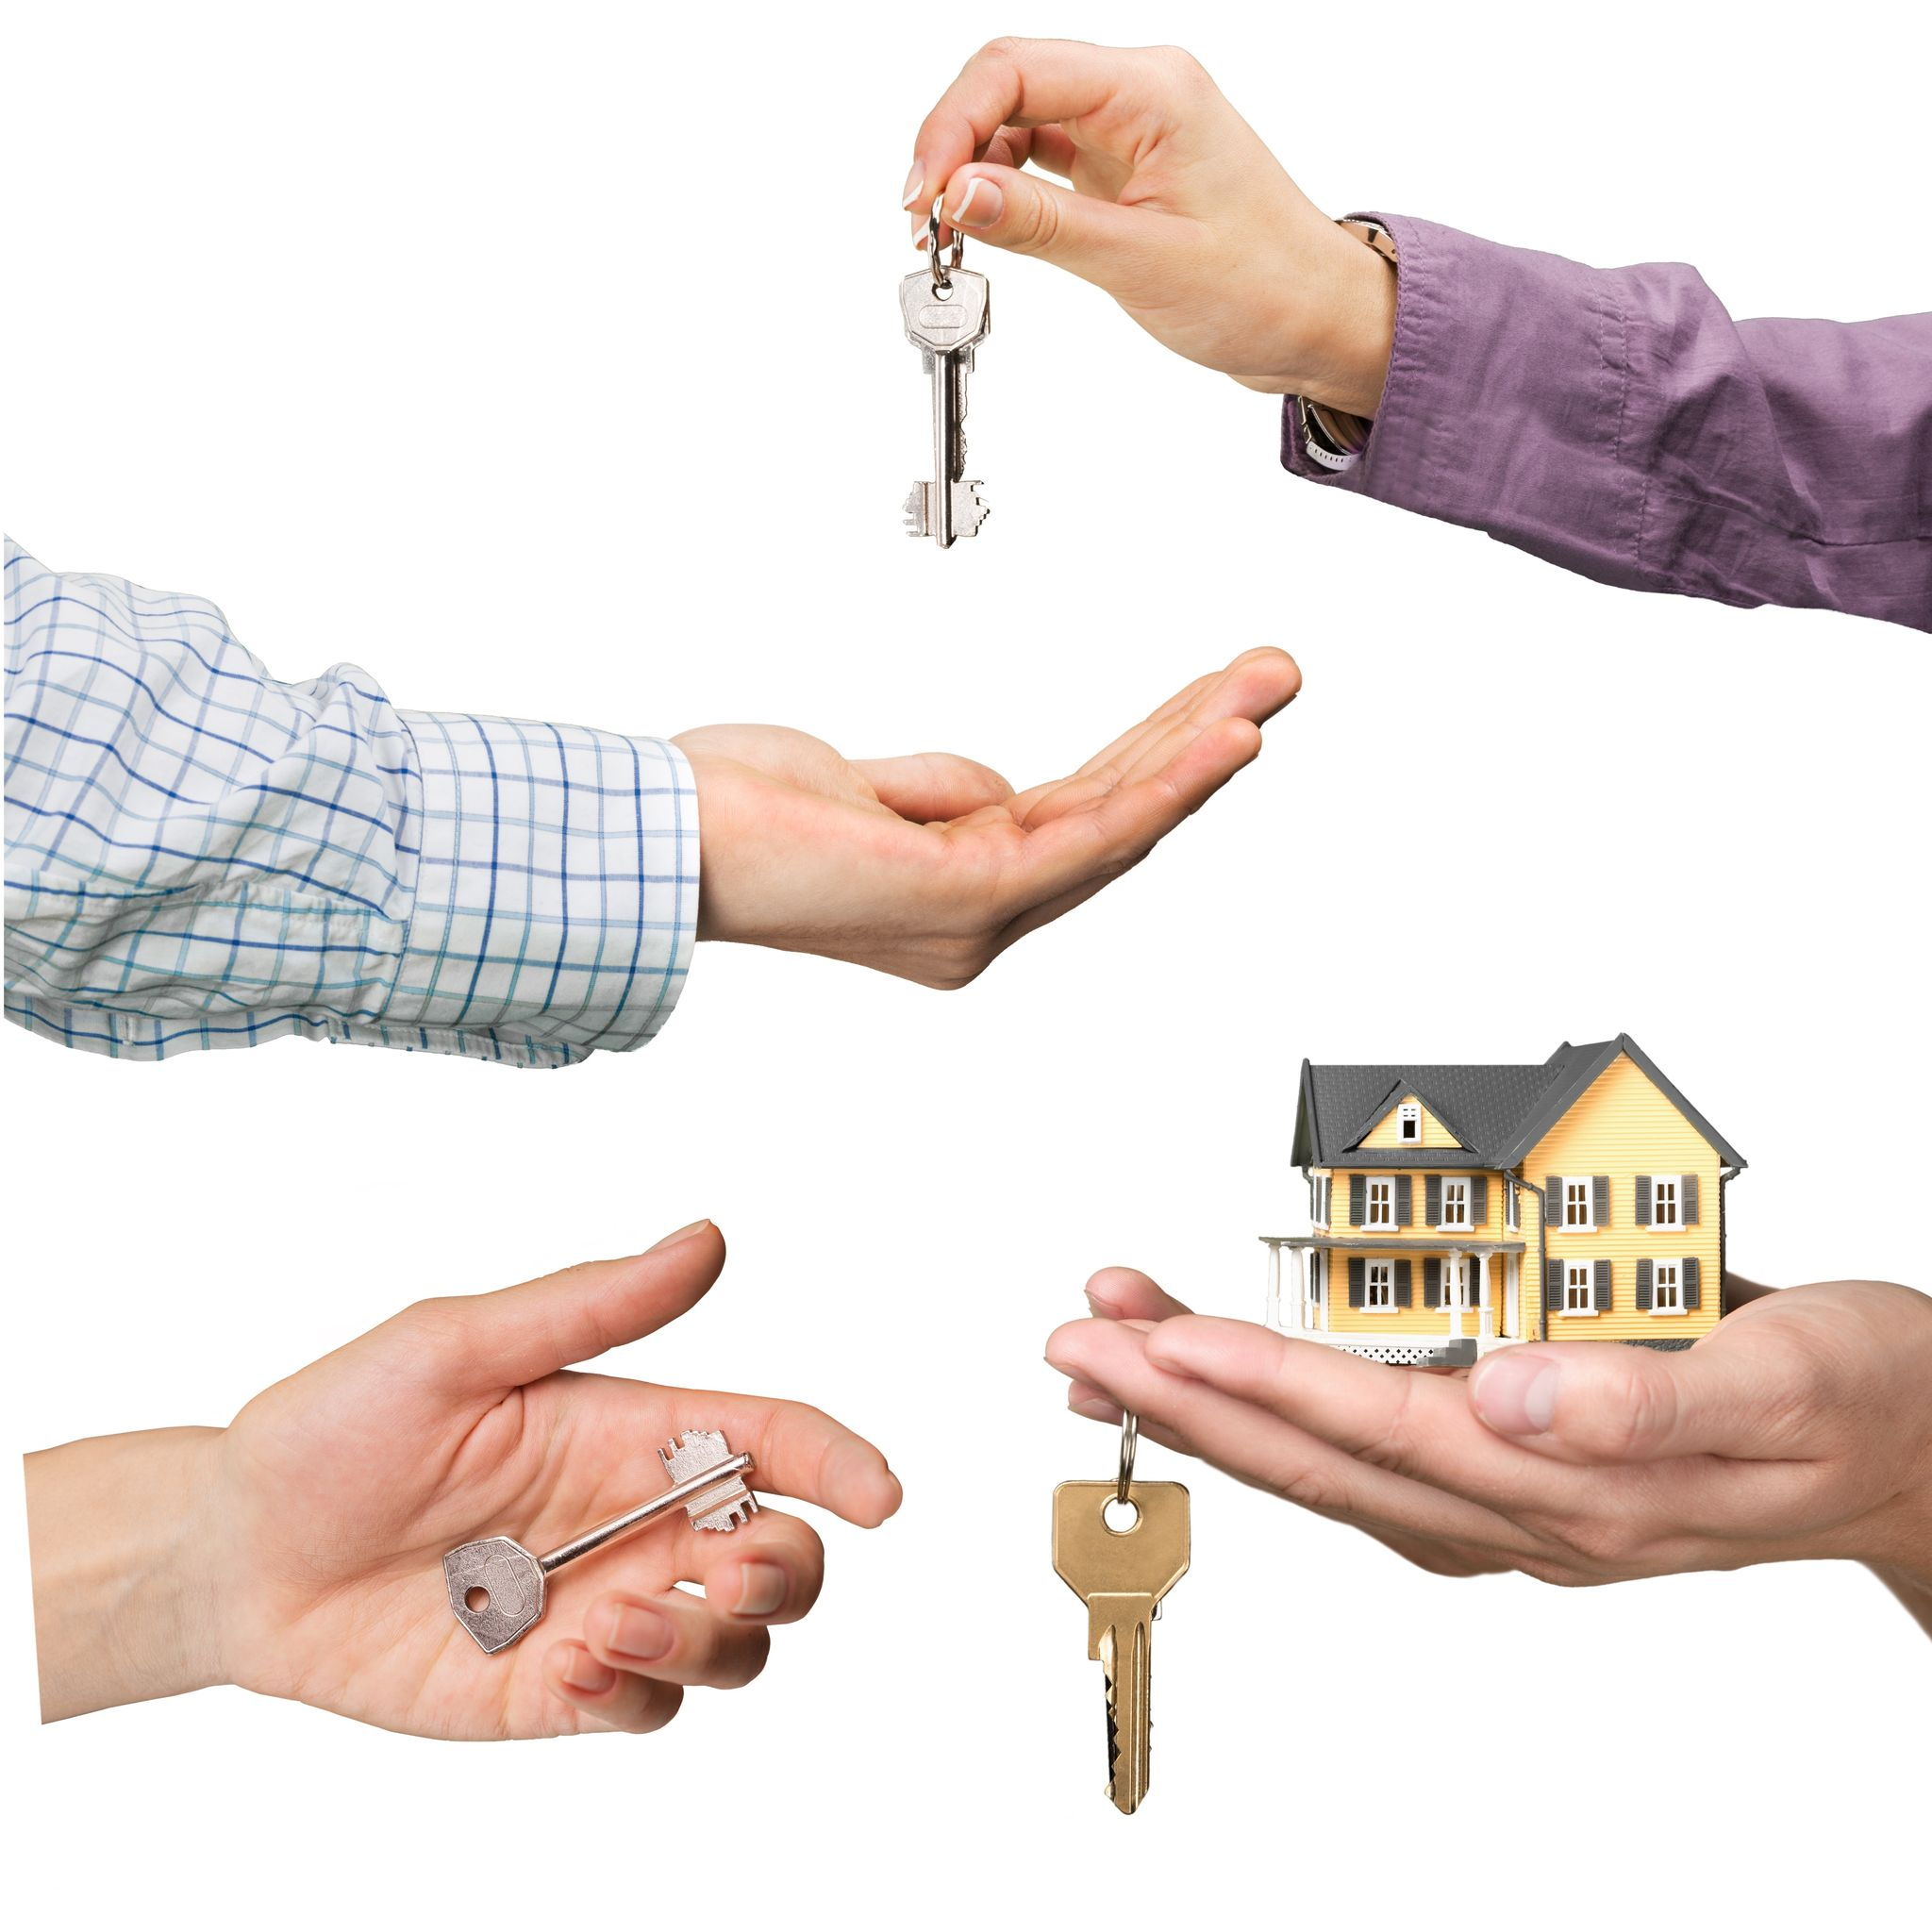 42322699 - real estate, real estate agent, house.